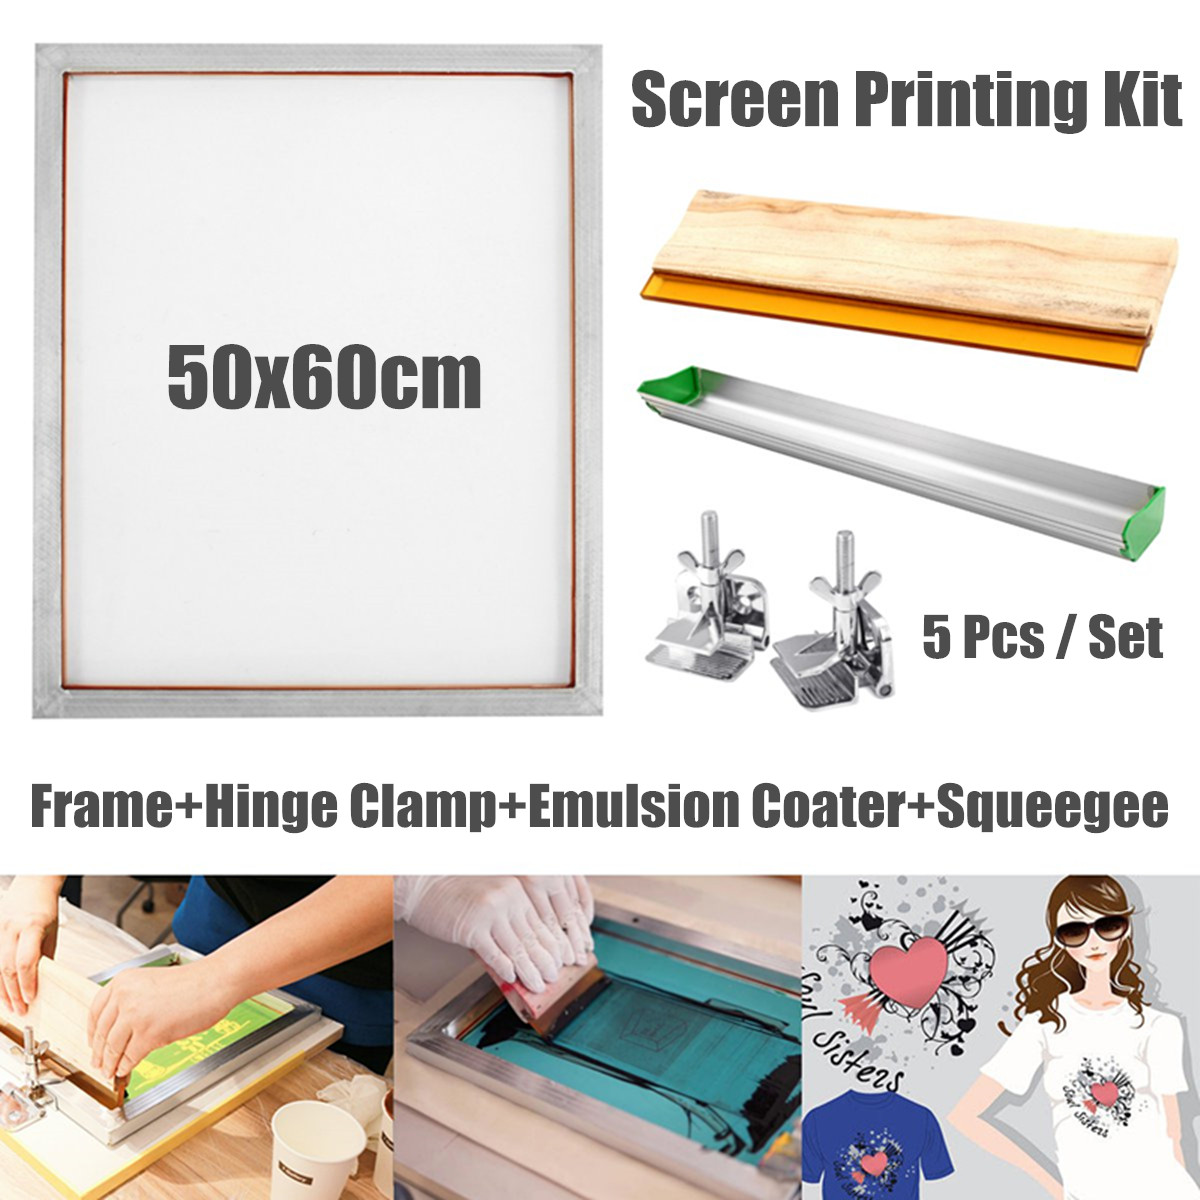 Screen Printing Kit Aluminum Frame+Hinge Clamp+Emulsion Coater+Squeegee Screen Printing Tools Parts Accessories 5Pcs/Set